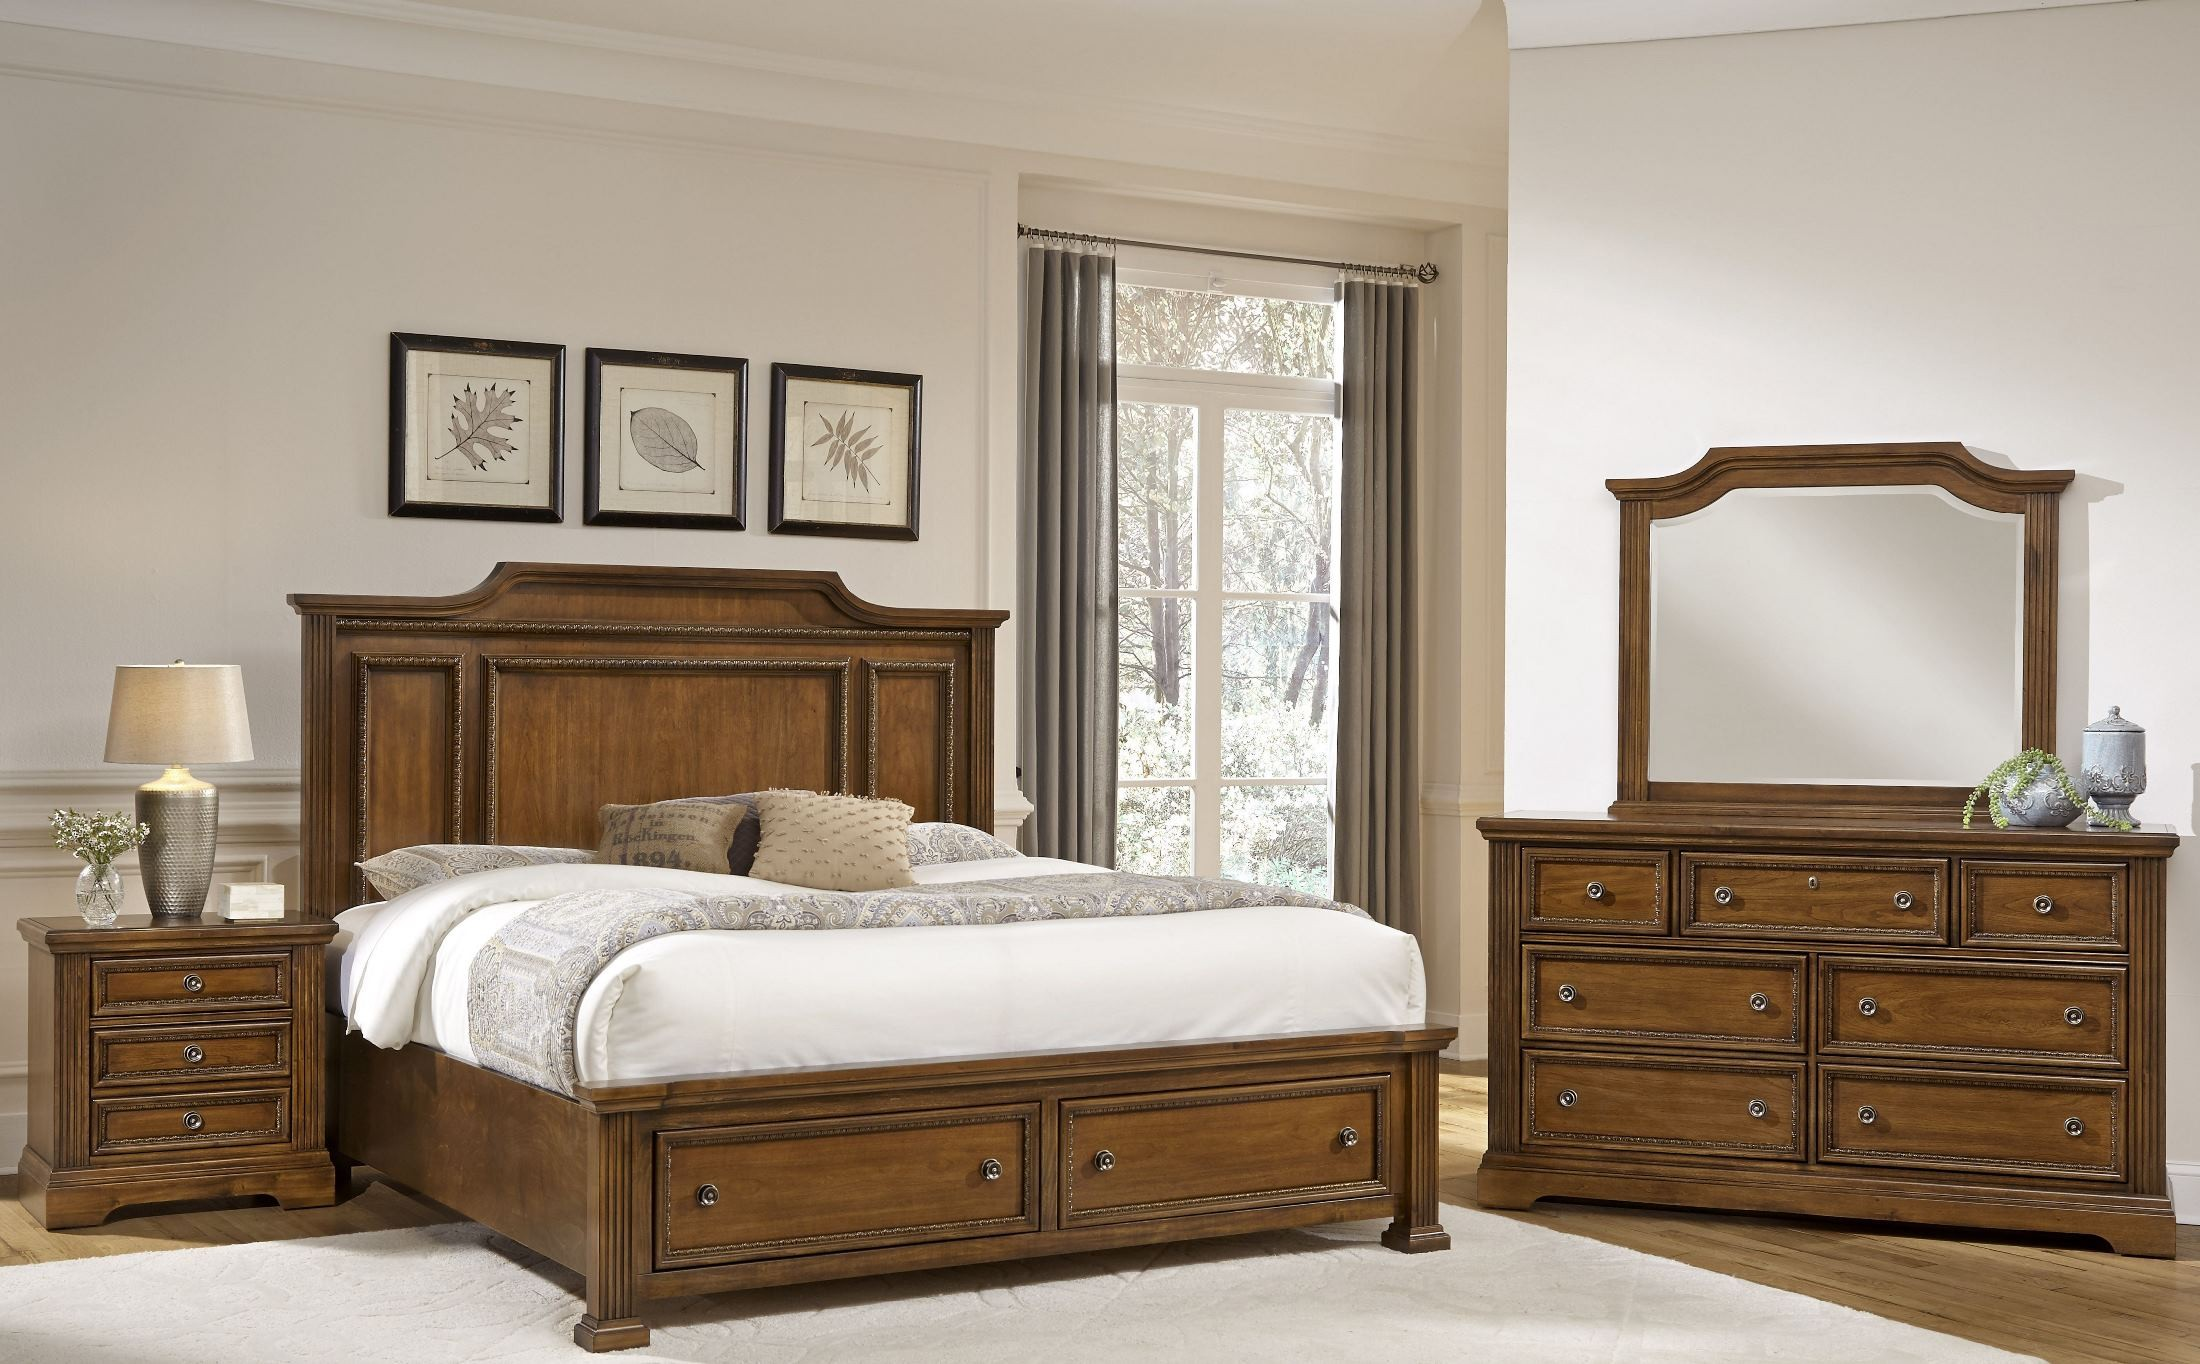 Affinity Antique Cherry Mansion Storage Bedroom Set From Virginia House Coleman Furniture